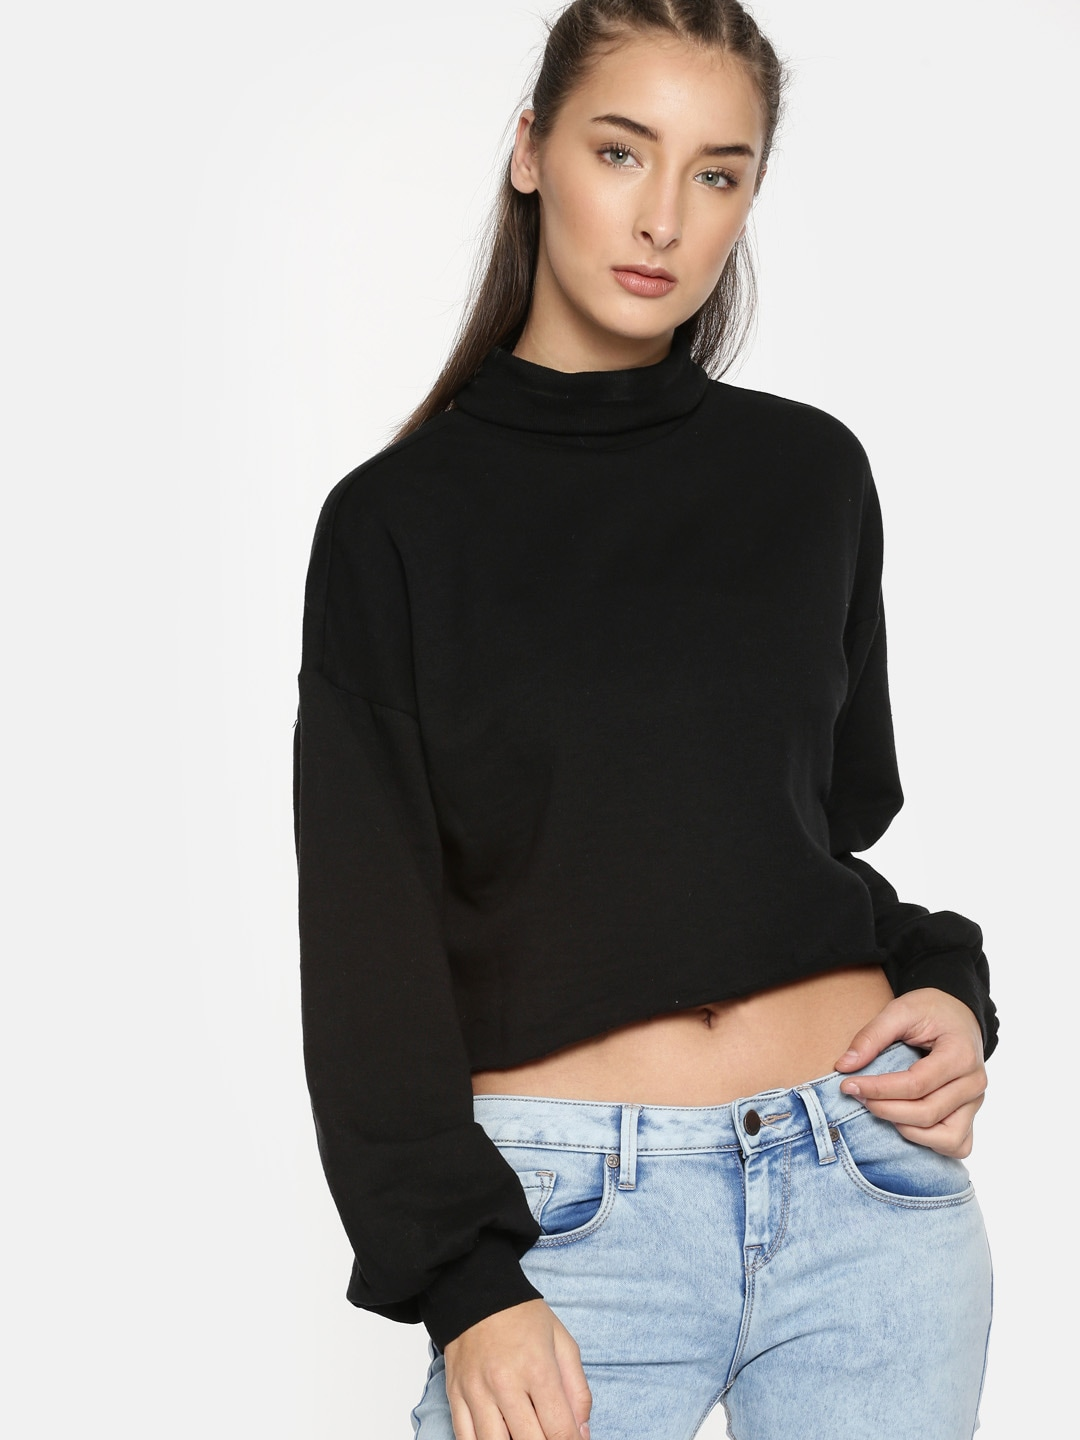 4988b54094a40 Cropped Sweatshirts - Buy Cropped Sweatshirts online in India